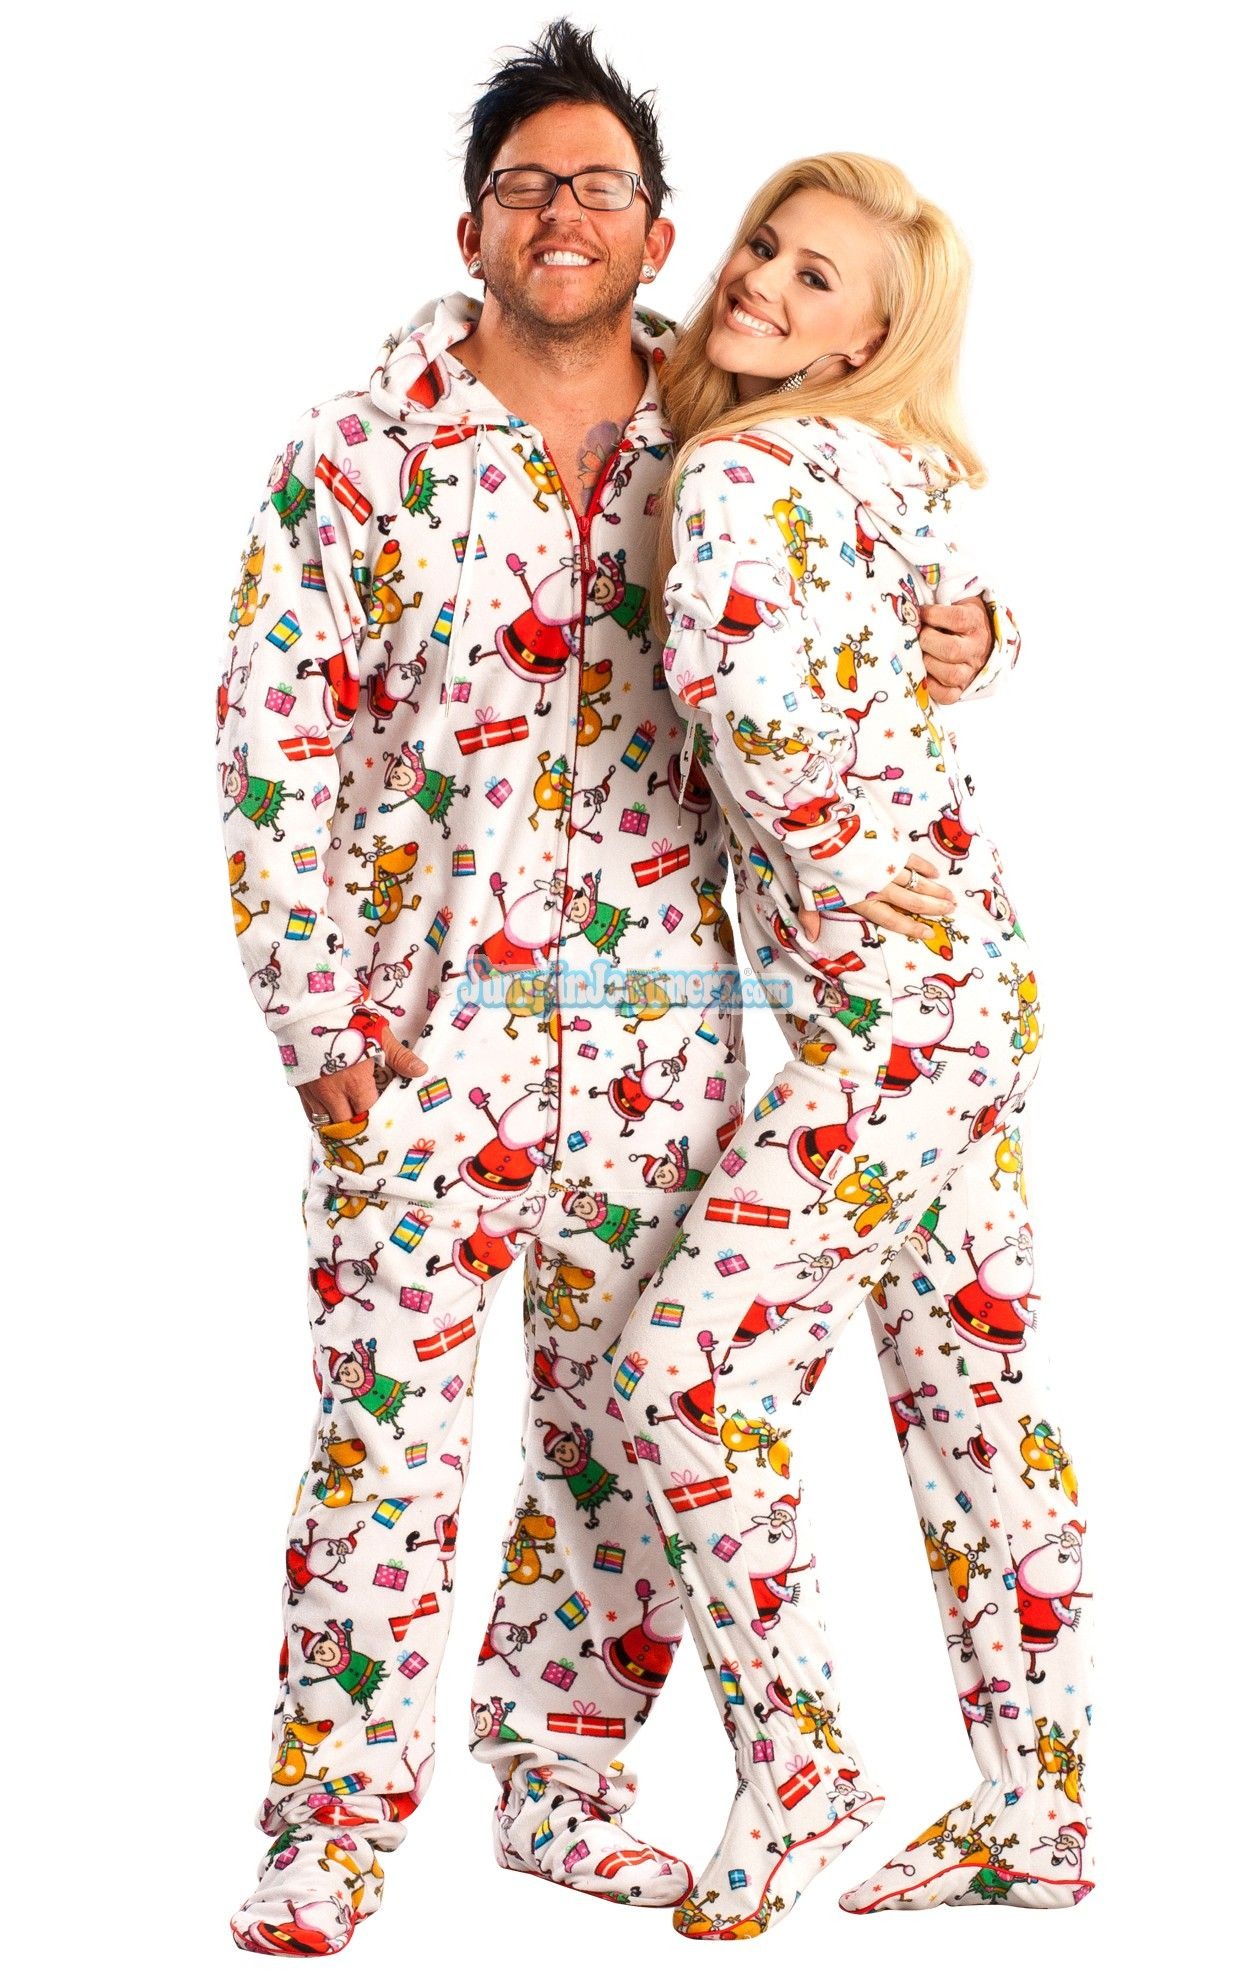 Rubik's cube adult footed pajamas | Rubik's Cube | Pinterest ...